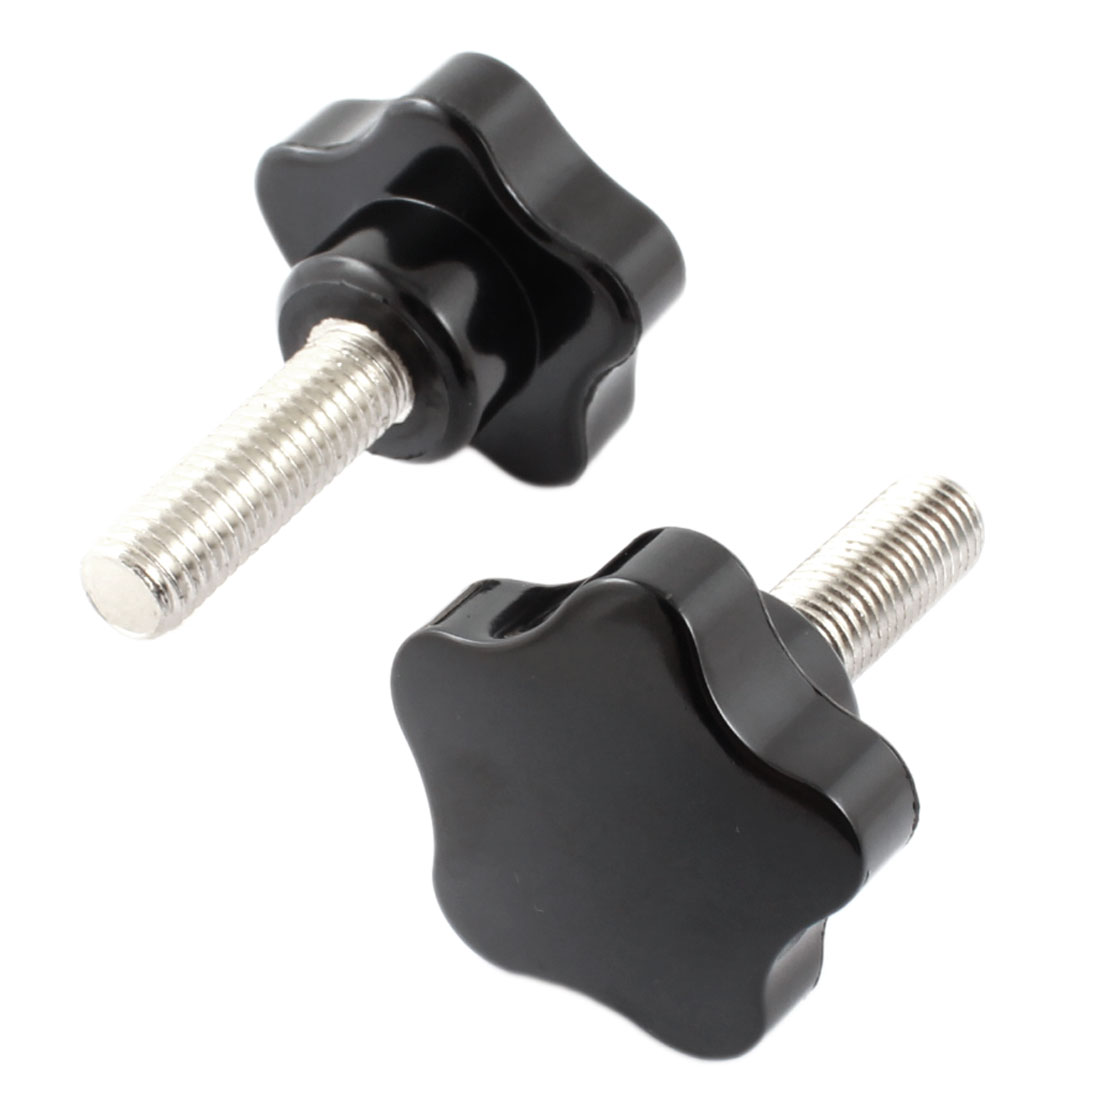 40mm x 12mm Thread Plastic Five Pointed Star Head Clamping Screw Knob Handle Black 2 Pcs